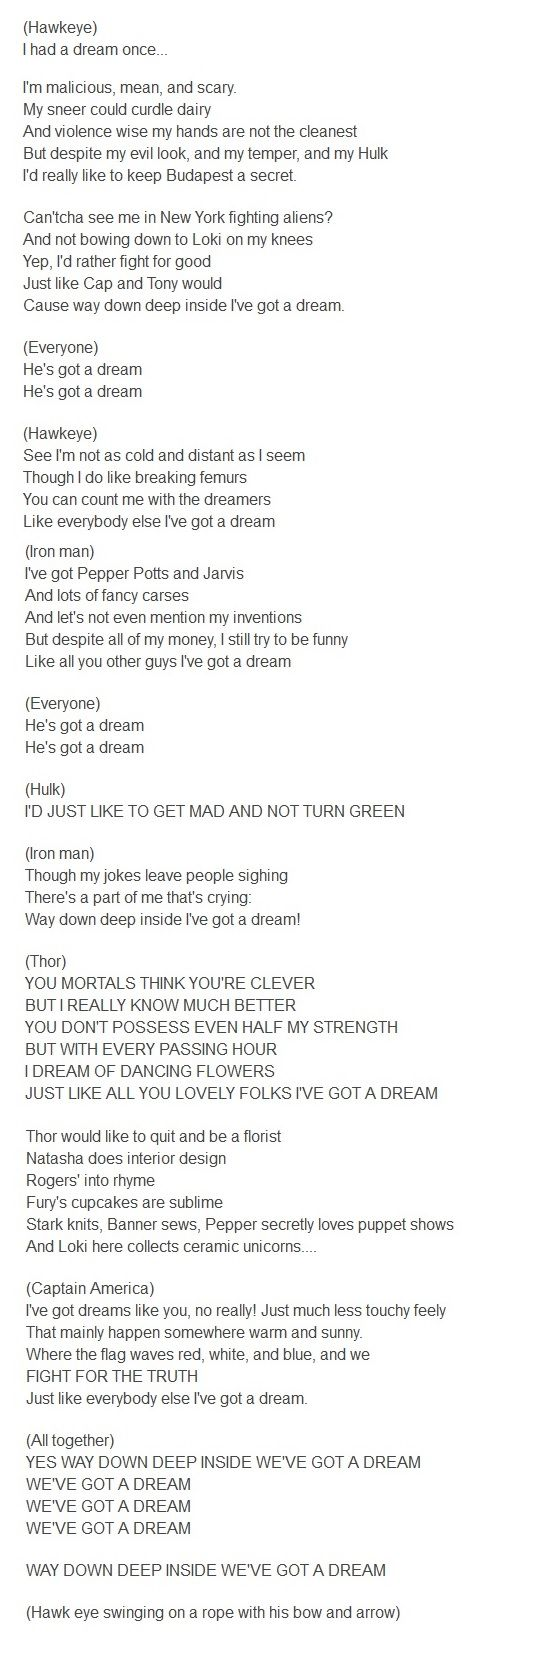 """Tangled """"I've got a Dream"""" as sung by the Avengers  hehe"""